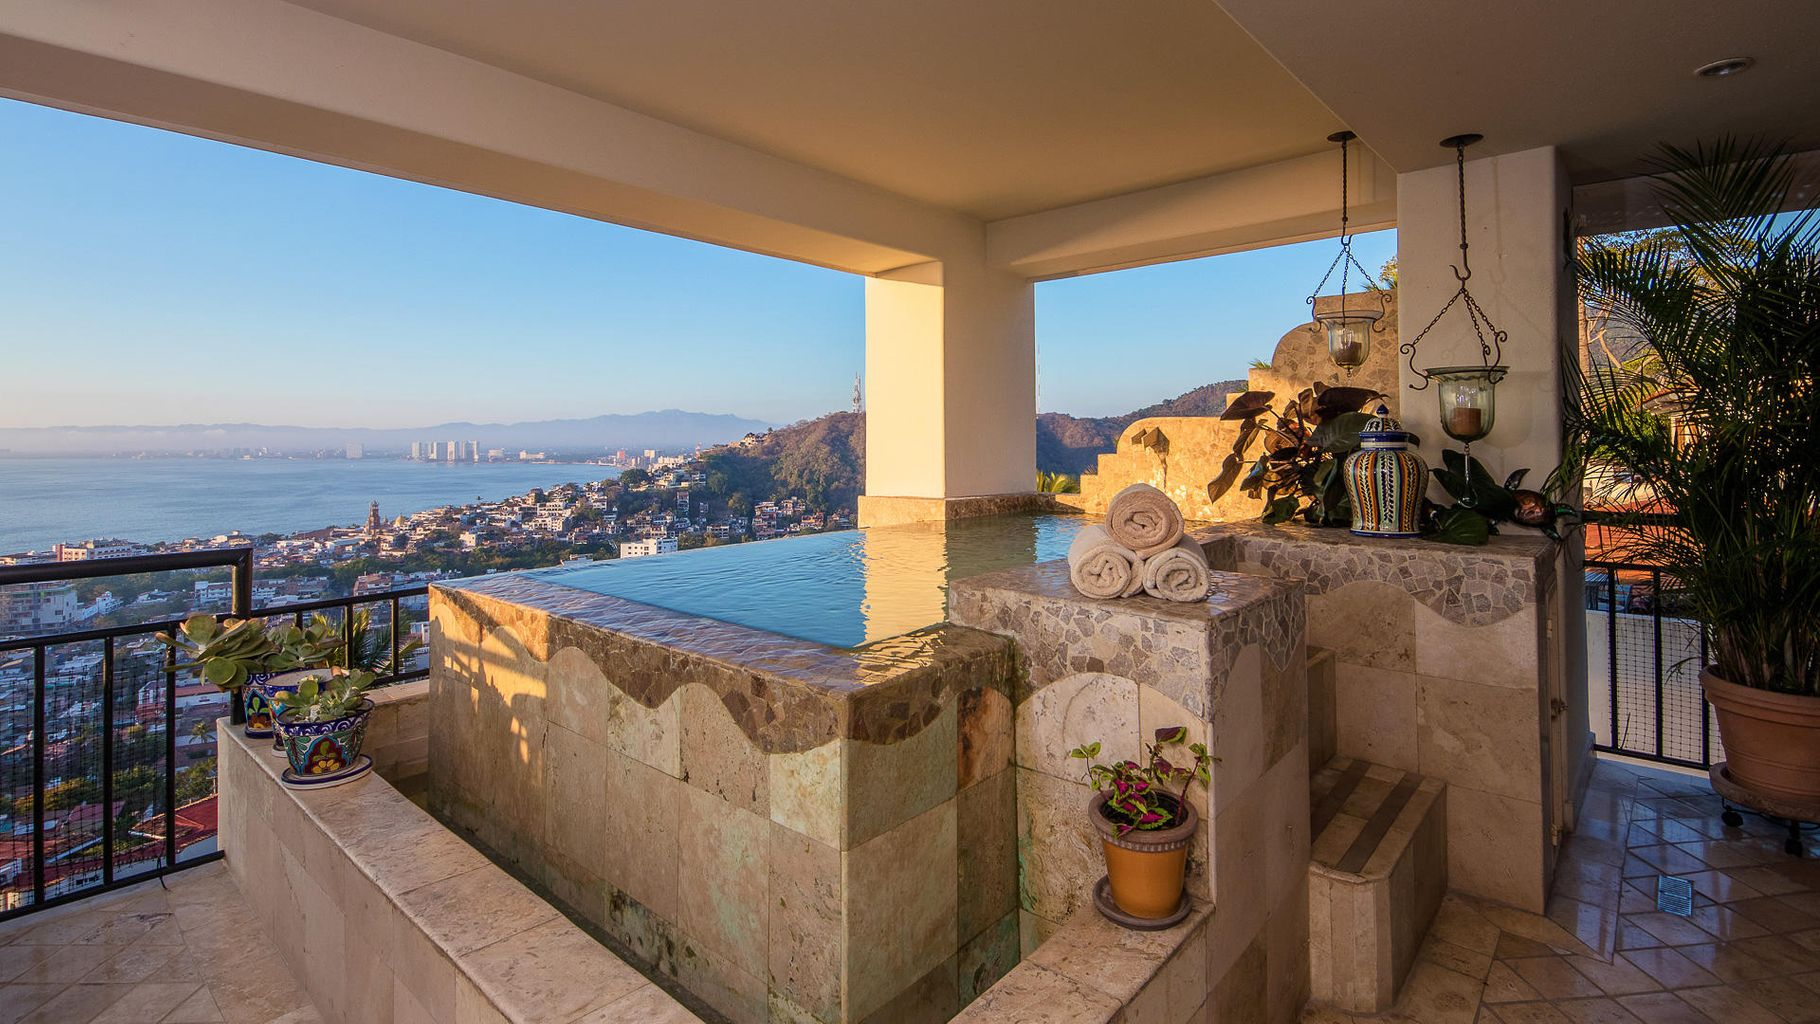 Private pool with view